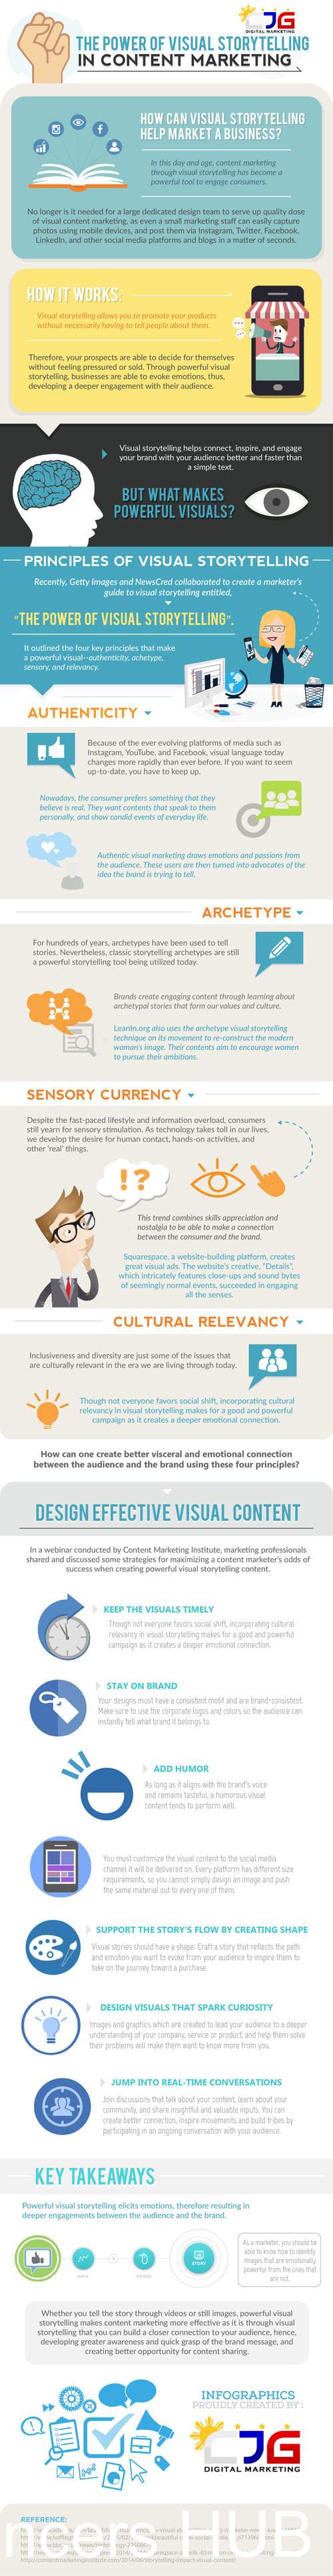 The Power of Visual Storytelling in Content Marketing #infographic